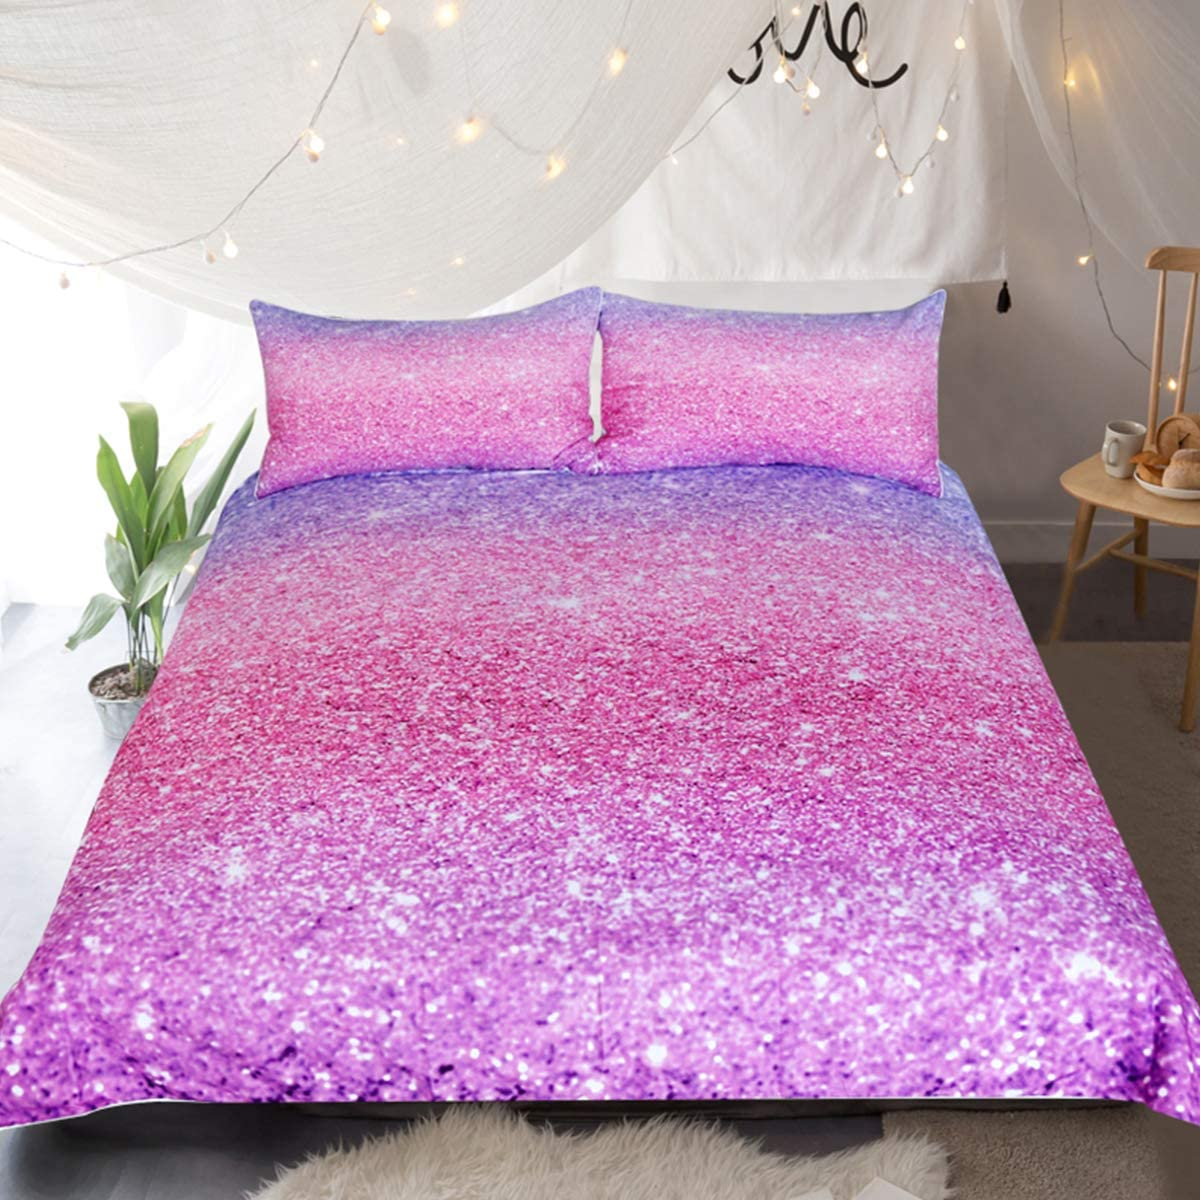 Sleepwish Glittery Bedding Set Colorful Abstract Glitter Purple and Pink Duvet Cover 3 Pieces Girls Sparkly Pastel Ombre Bed Set (Twin)